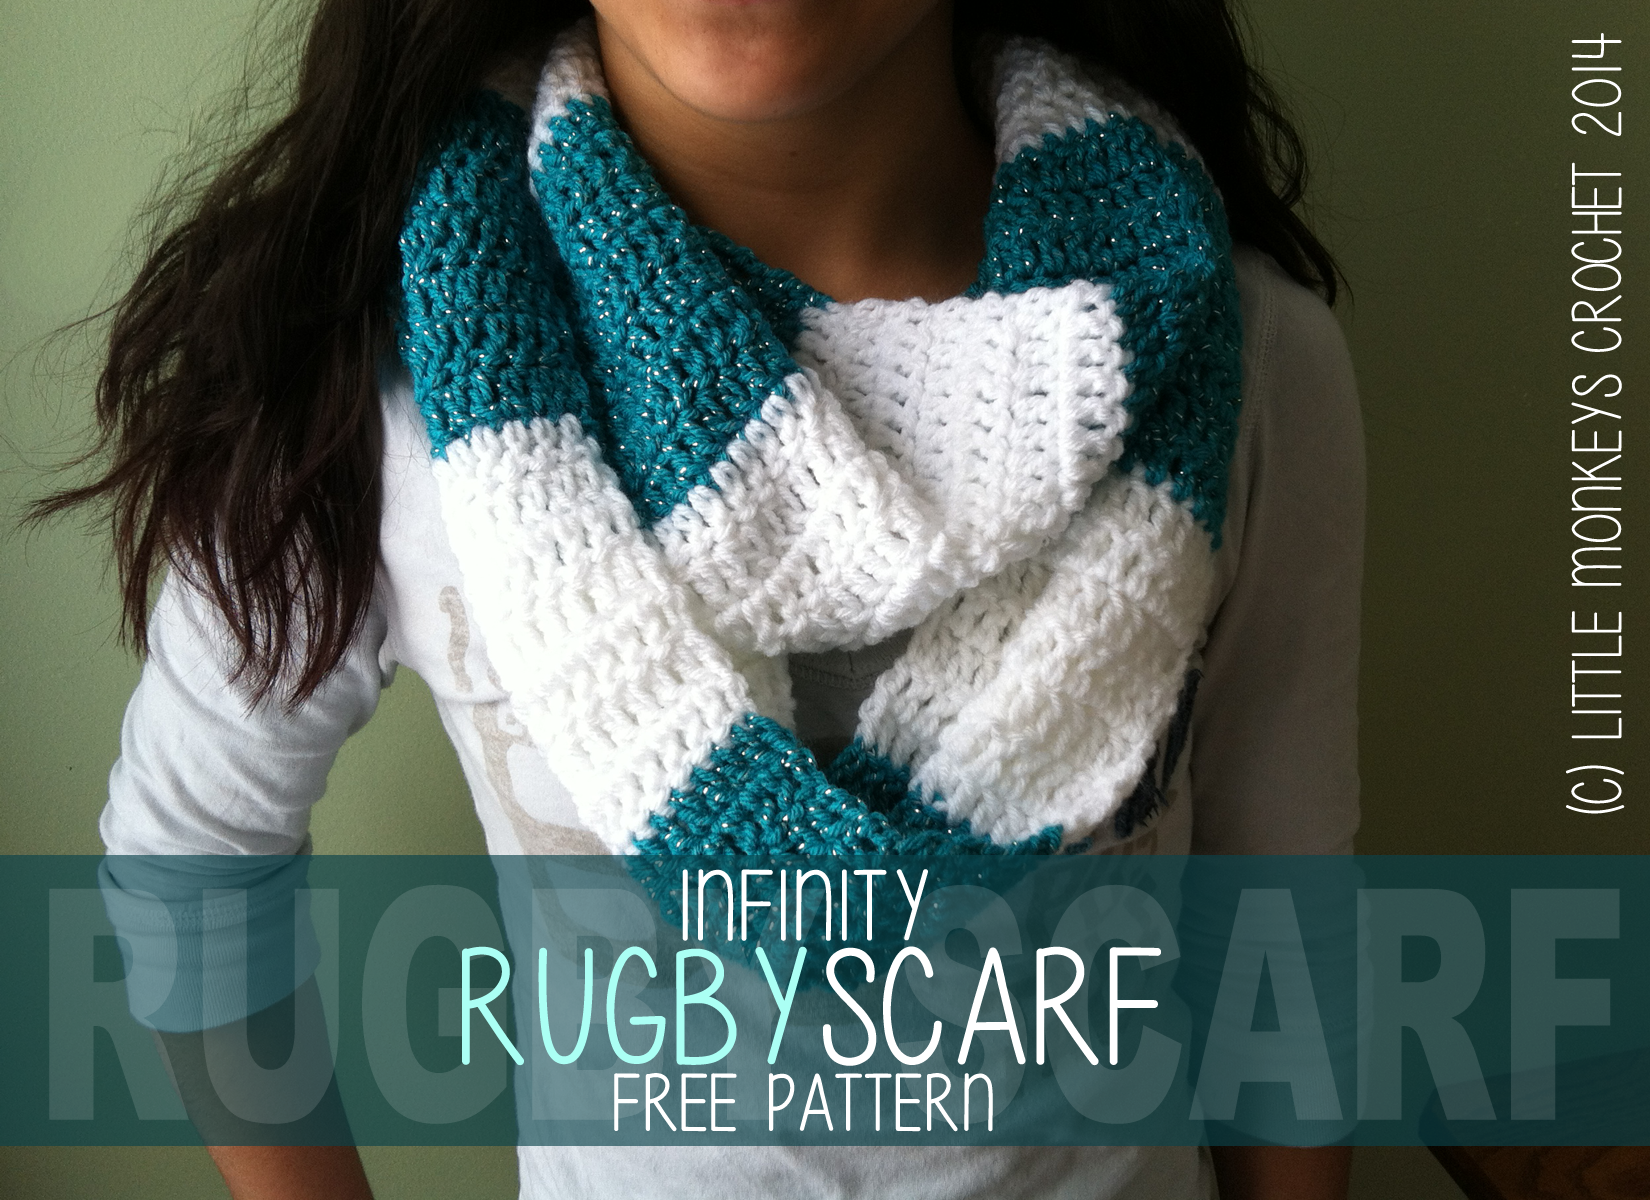 Free Crochet Pattern Striped Scarf : Free Crochet Pattern: Rugby Infinity Scarf (Striped ...